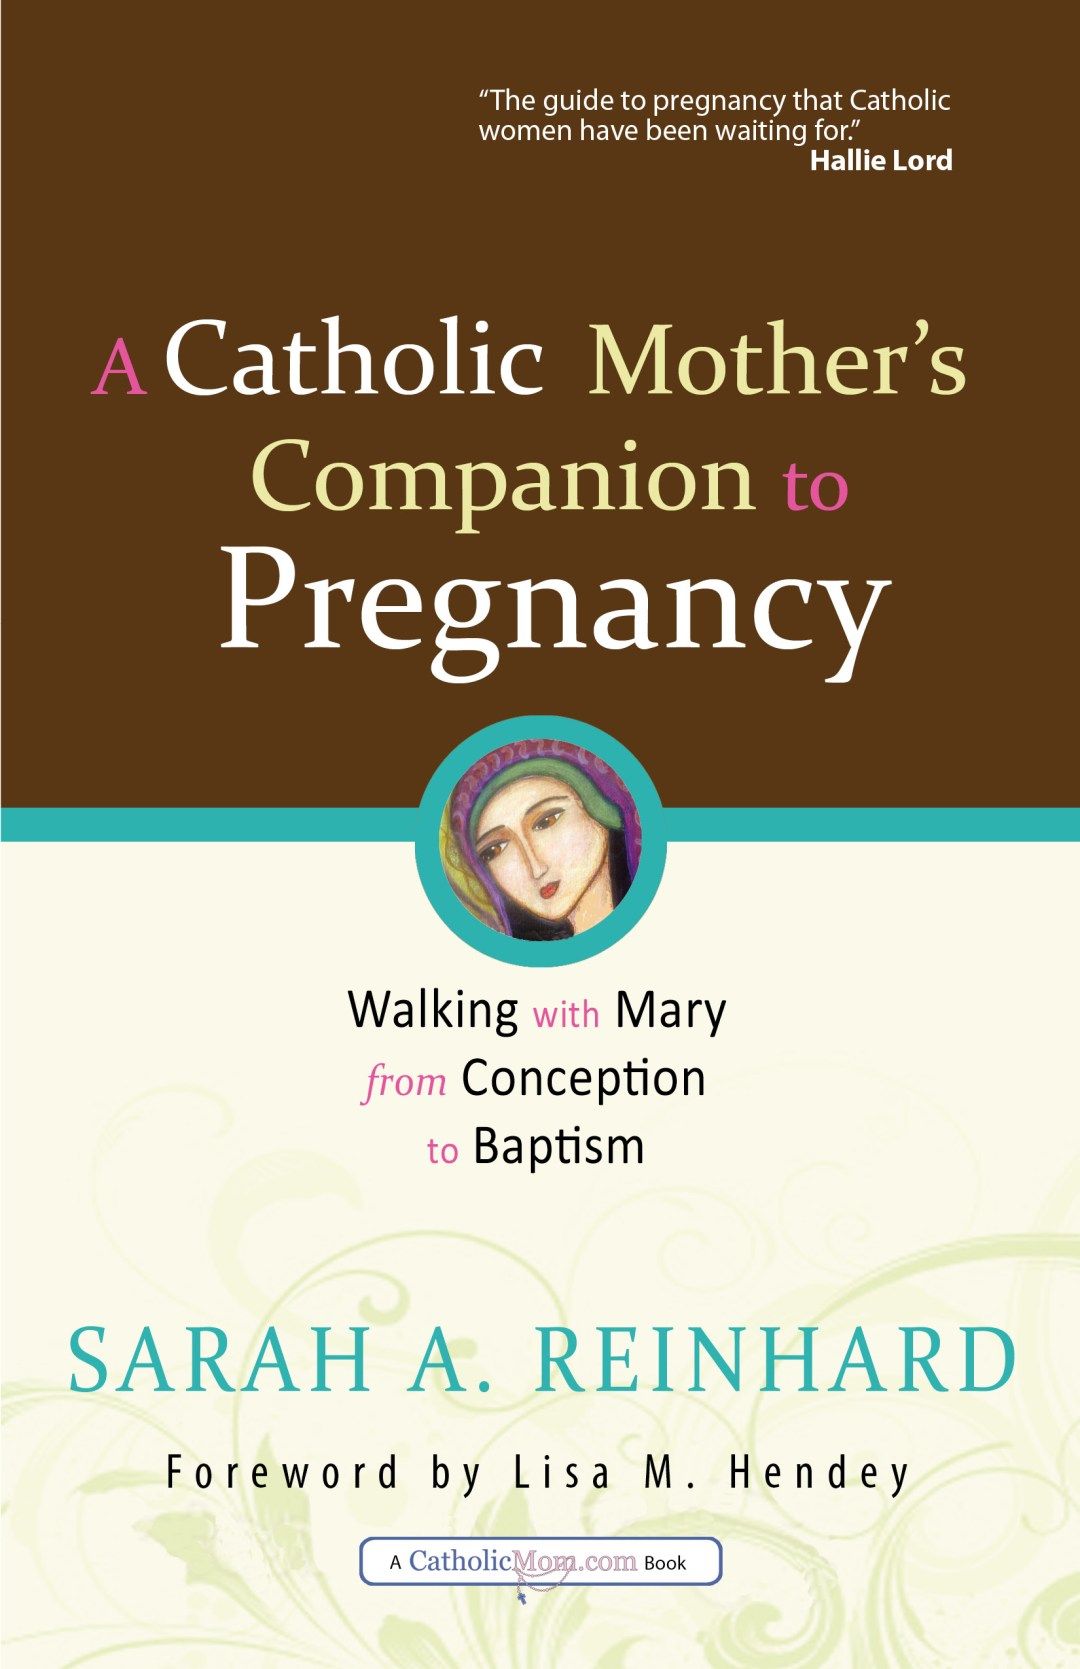 A Catholic Mom's Companion to Pregnancy by Sarah A. Reinhard